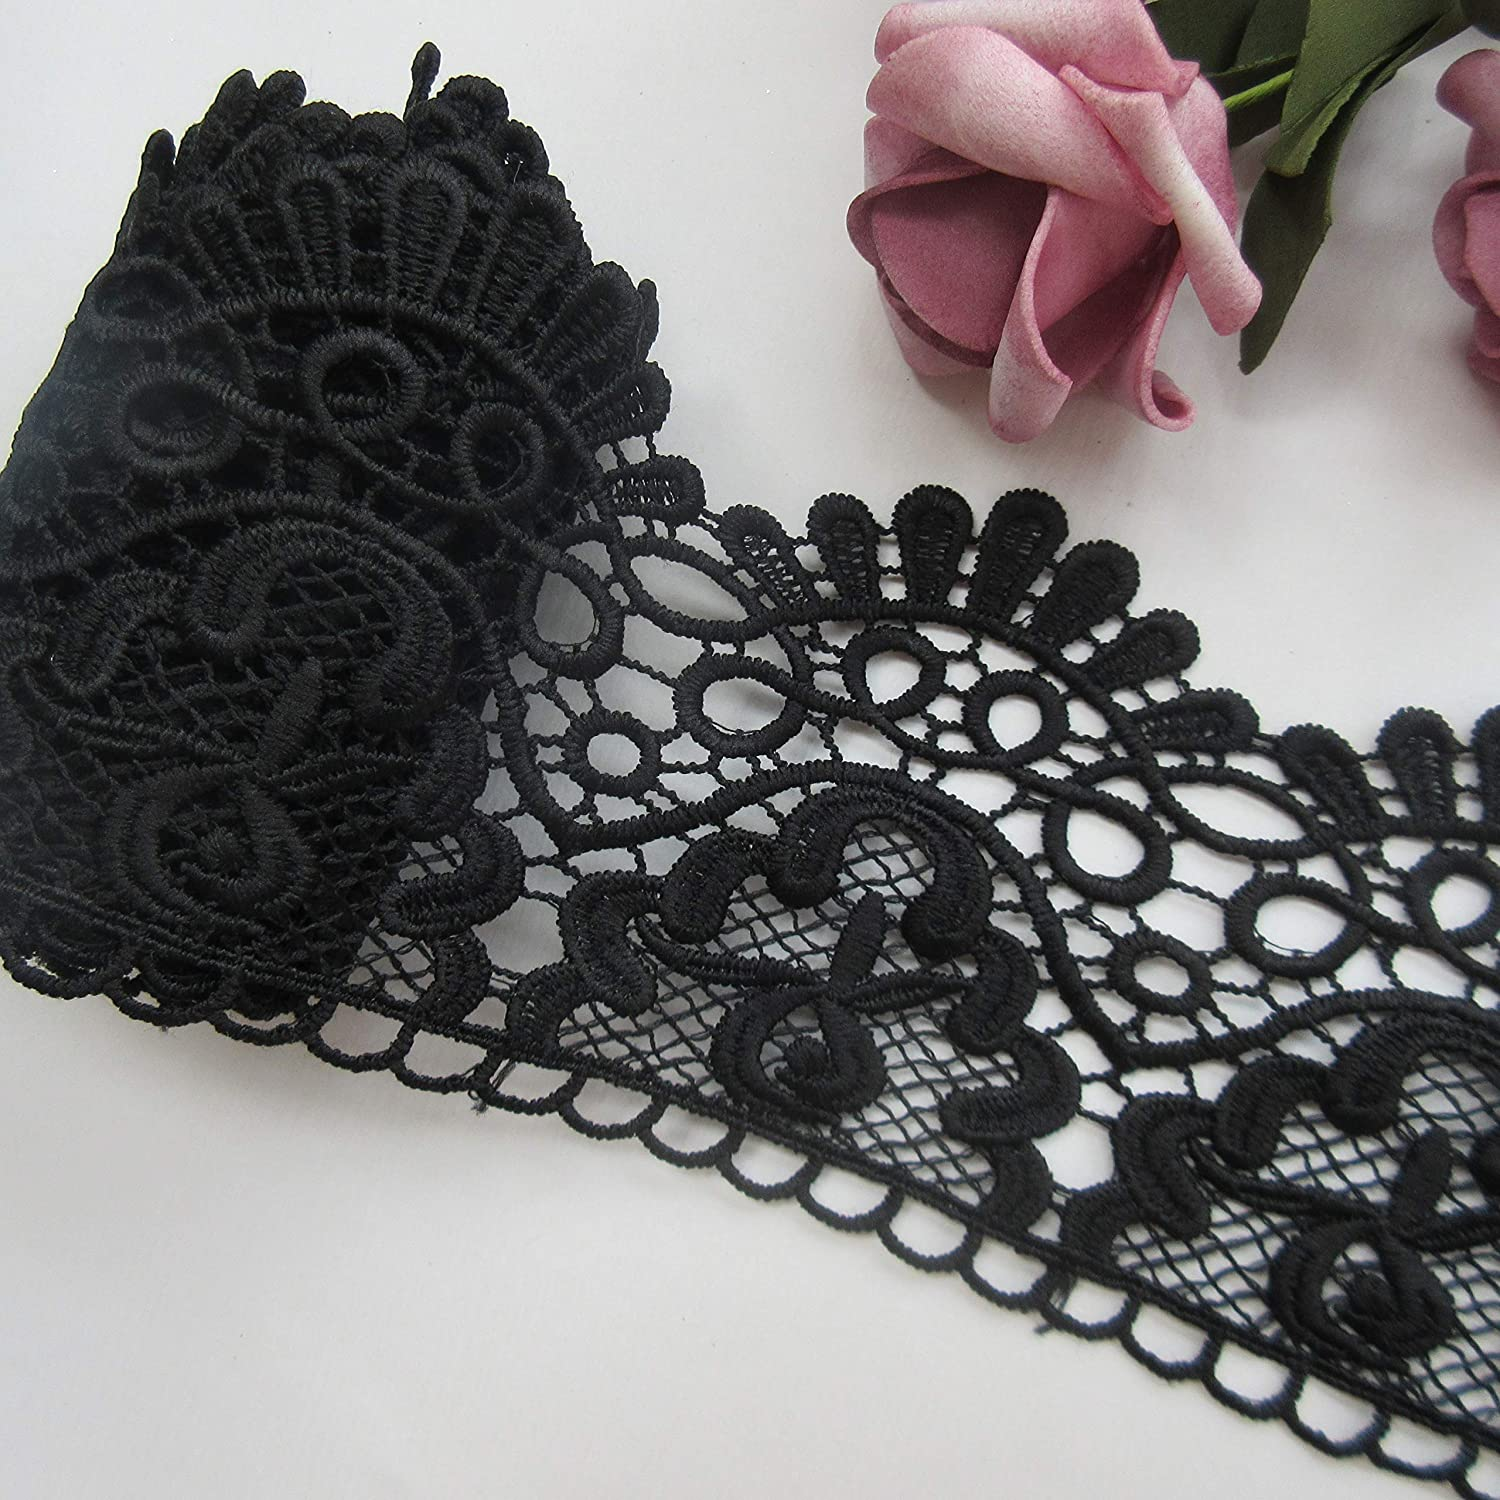 1 Yard Milk Fiber Europe Crown Pattern Floral Lace Edge Trim Ribbon 9cm Wide Vintage Style Black Edging Trimmings Fabric Embroidered Applique Sewing Craft Wedding Bridal Dress Embellishment DIY Decoration Clothes Embroidery Qiuda